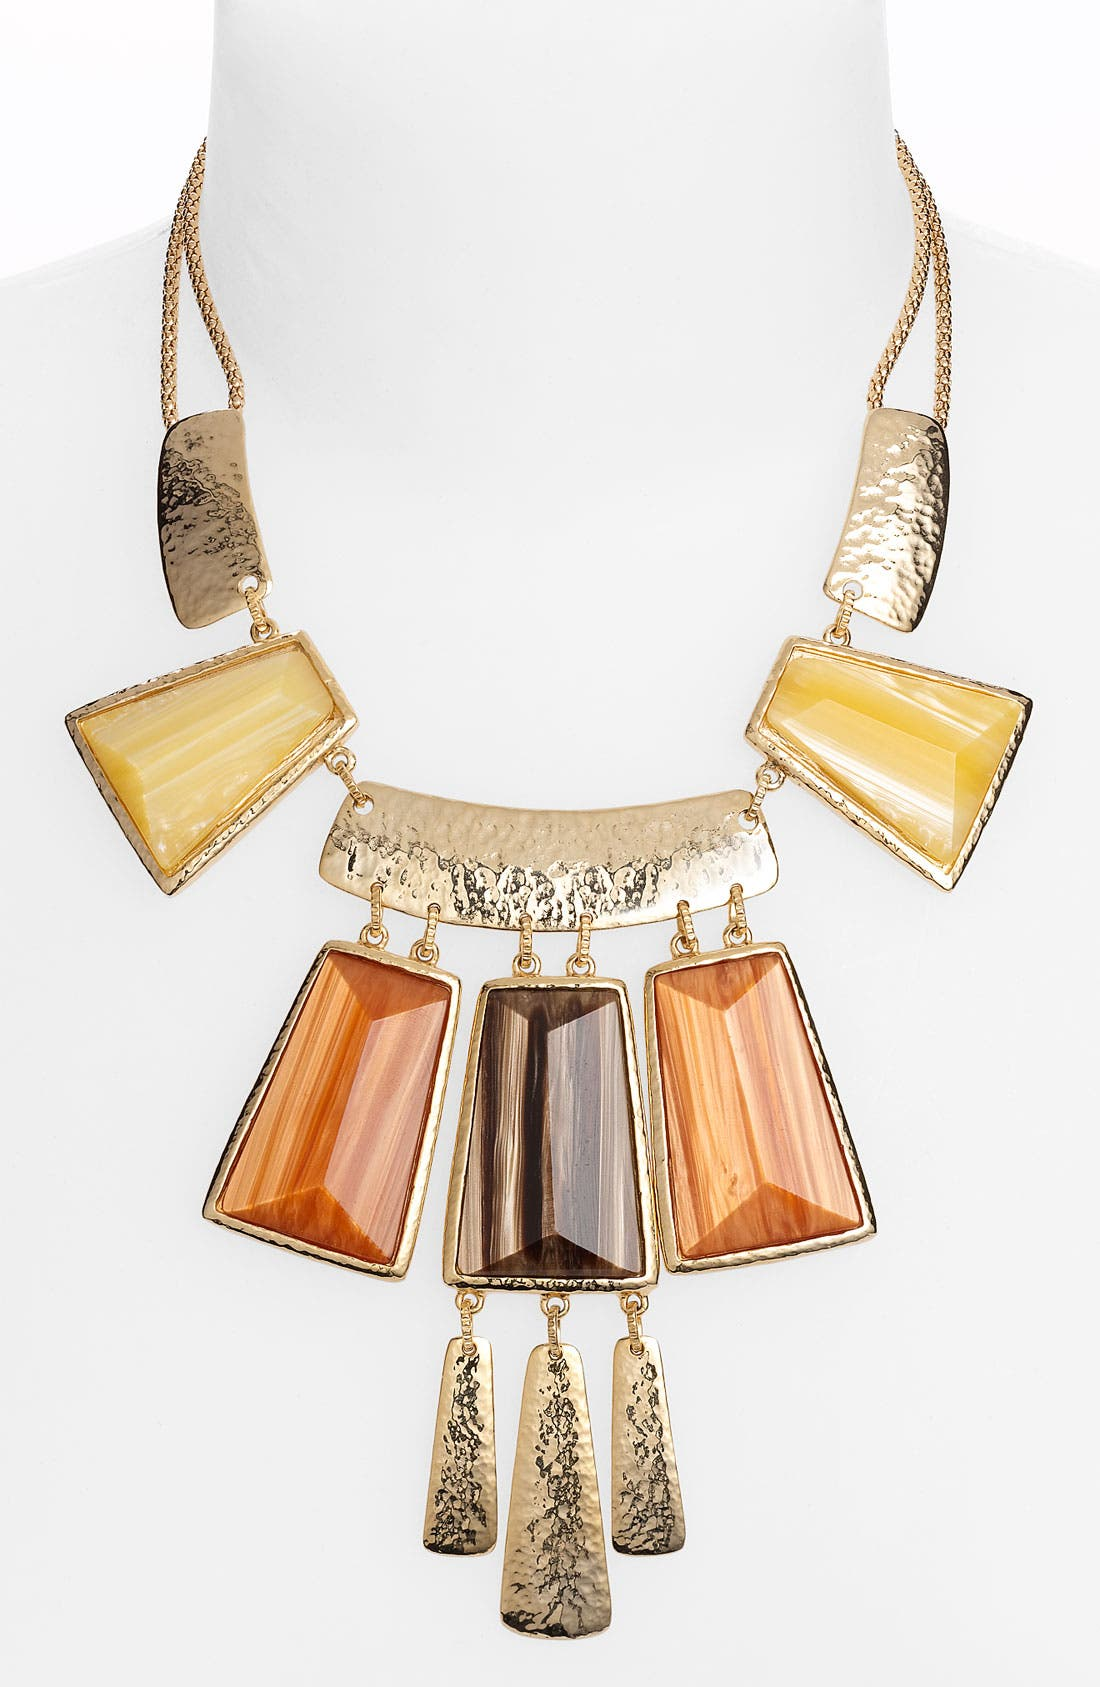 NORDSTROM, 'Tribal Deluxe' Frontal Statement Necklace, Main thumbnail 1, color, 200